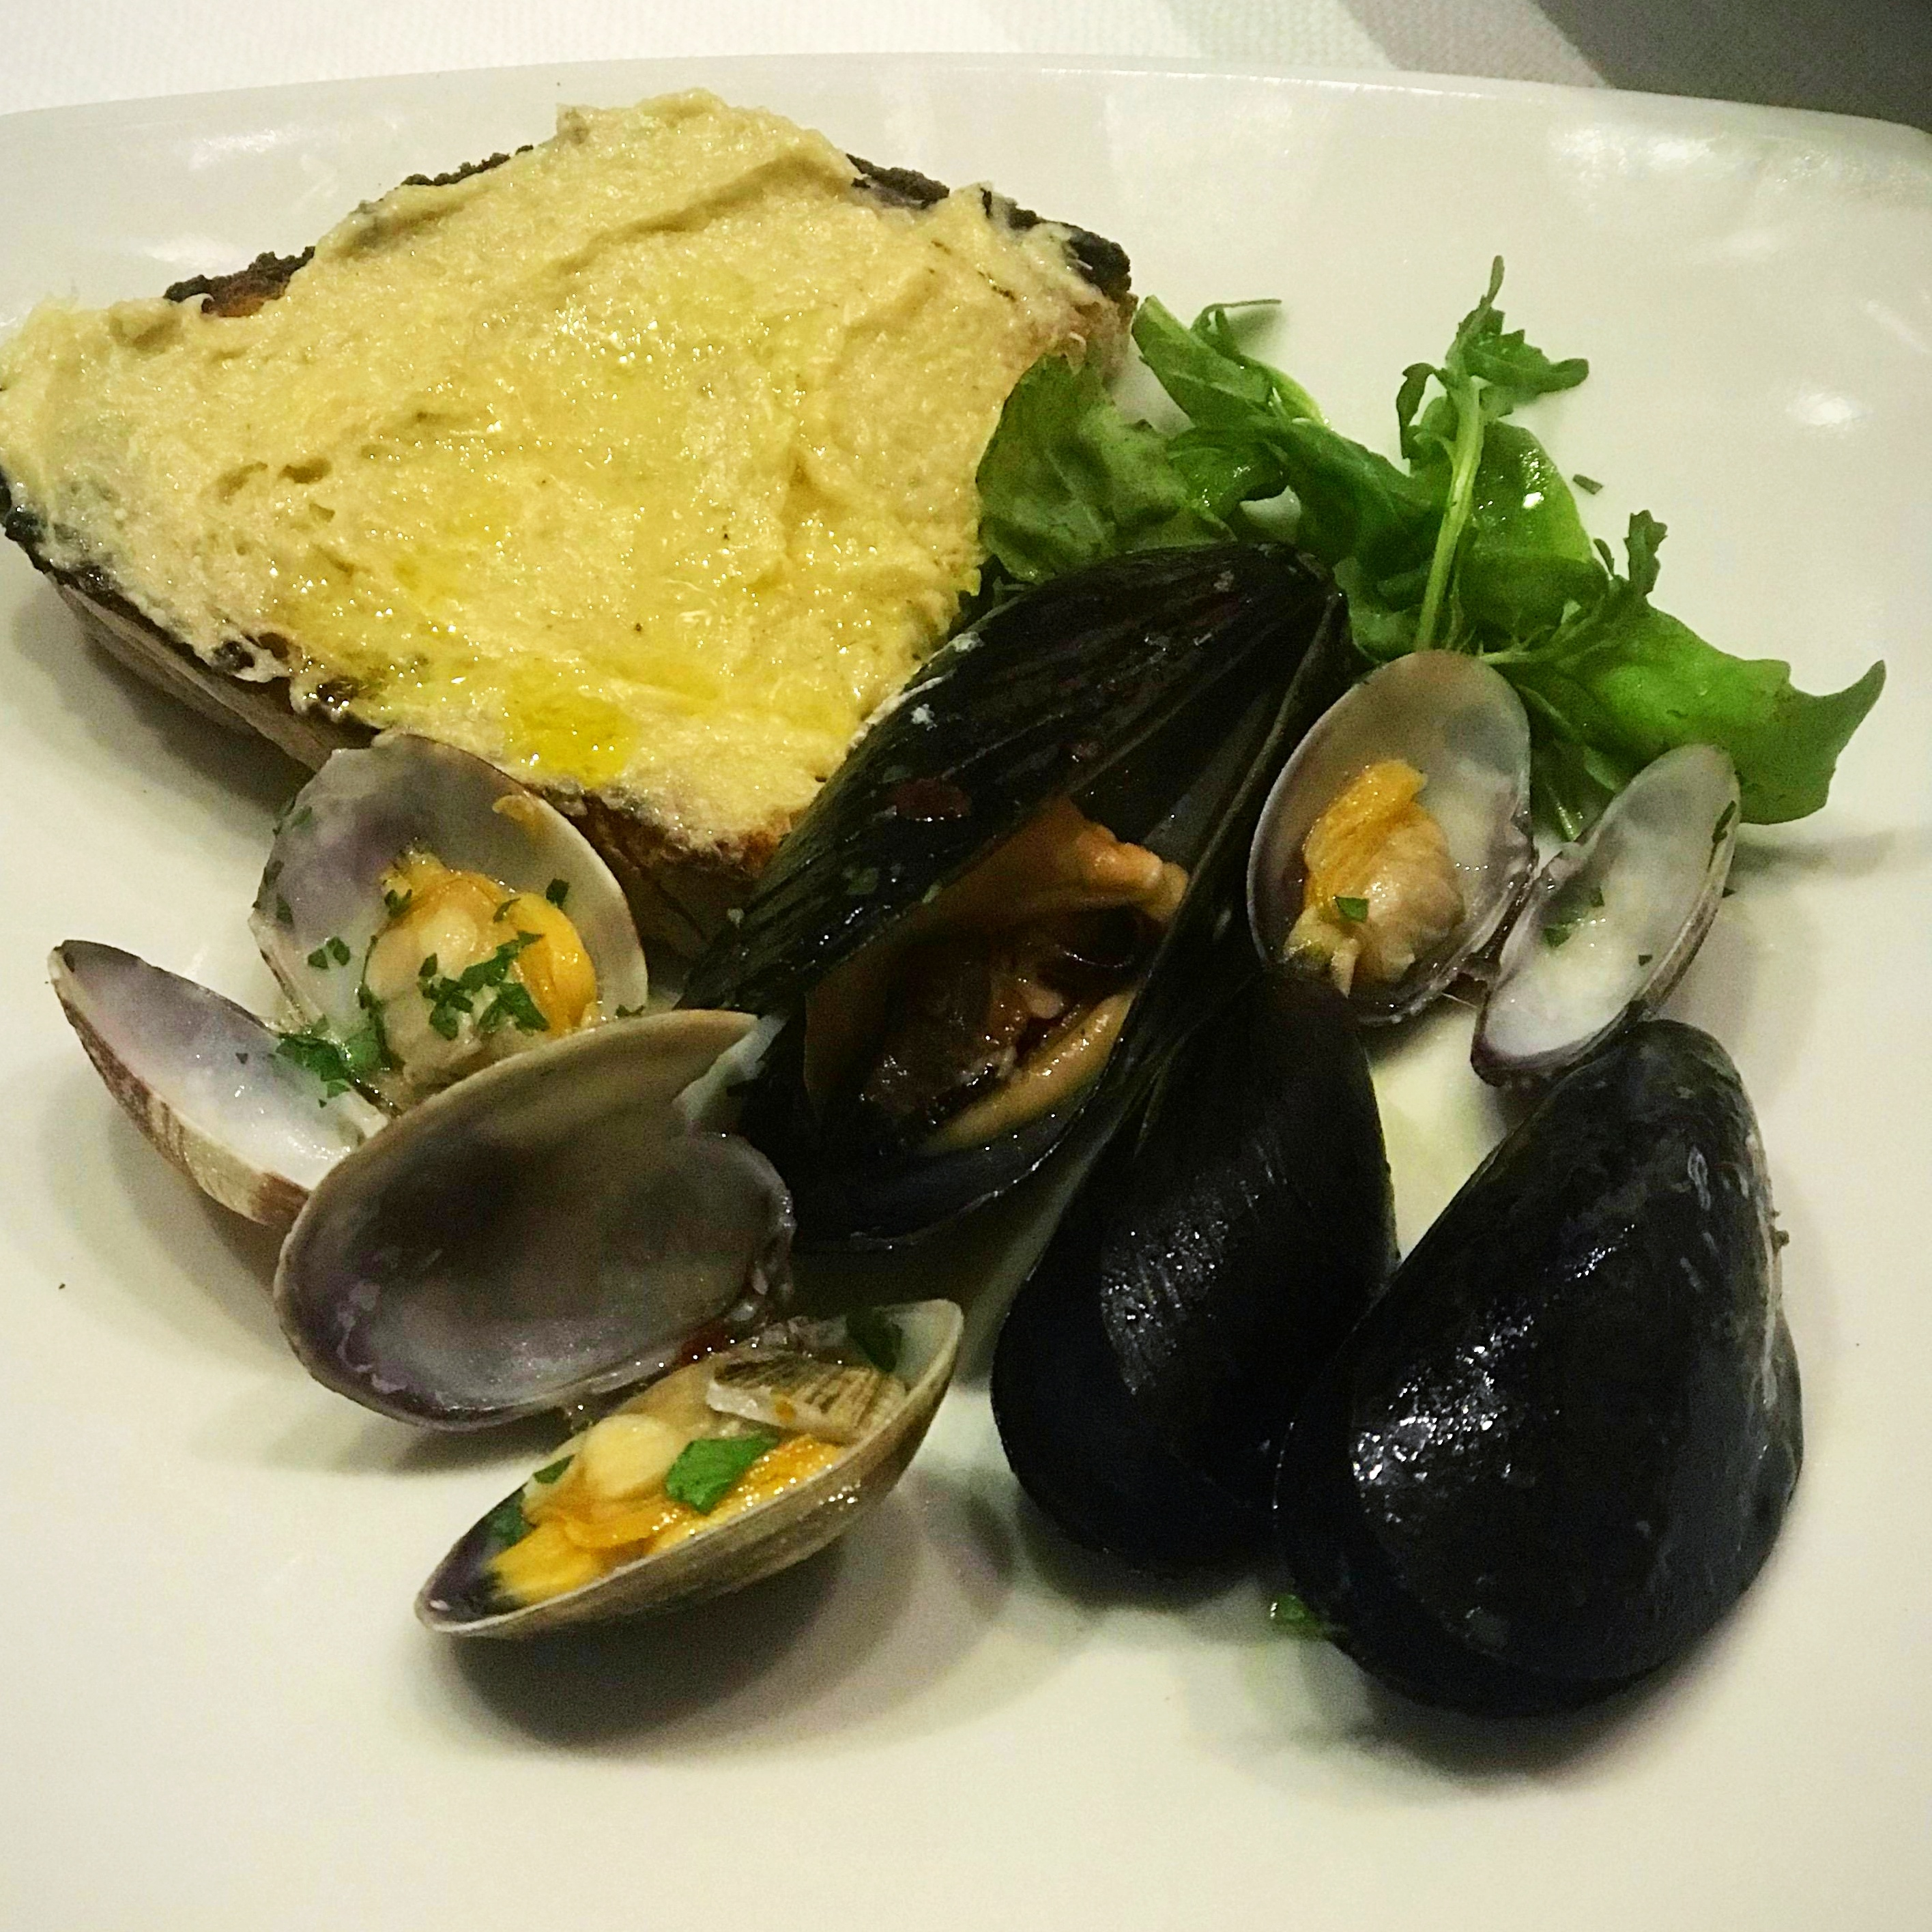 A seafood appetizer from Rome, mussels and bread with a special house sauce